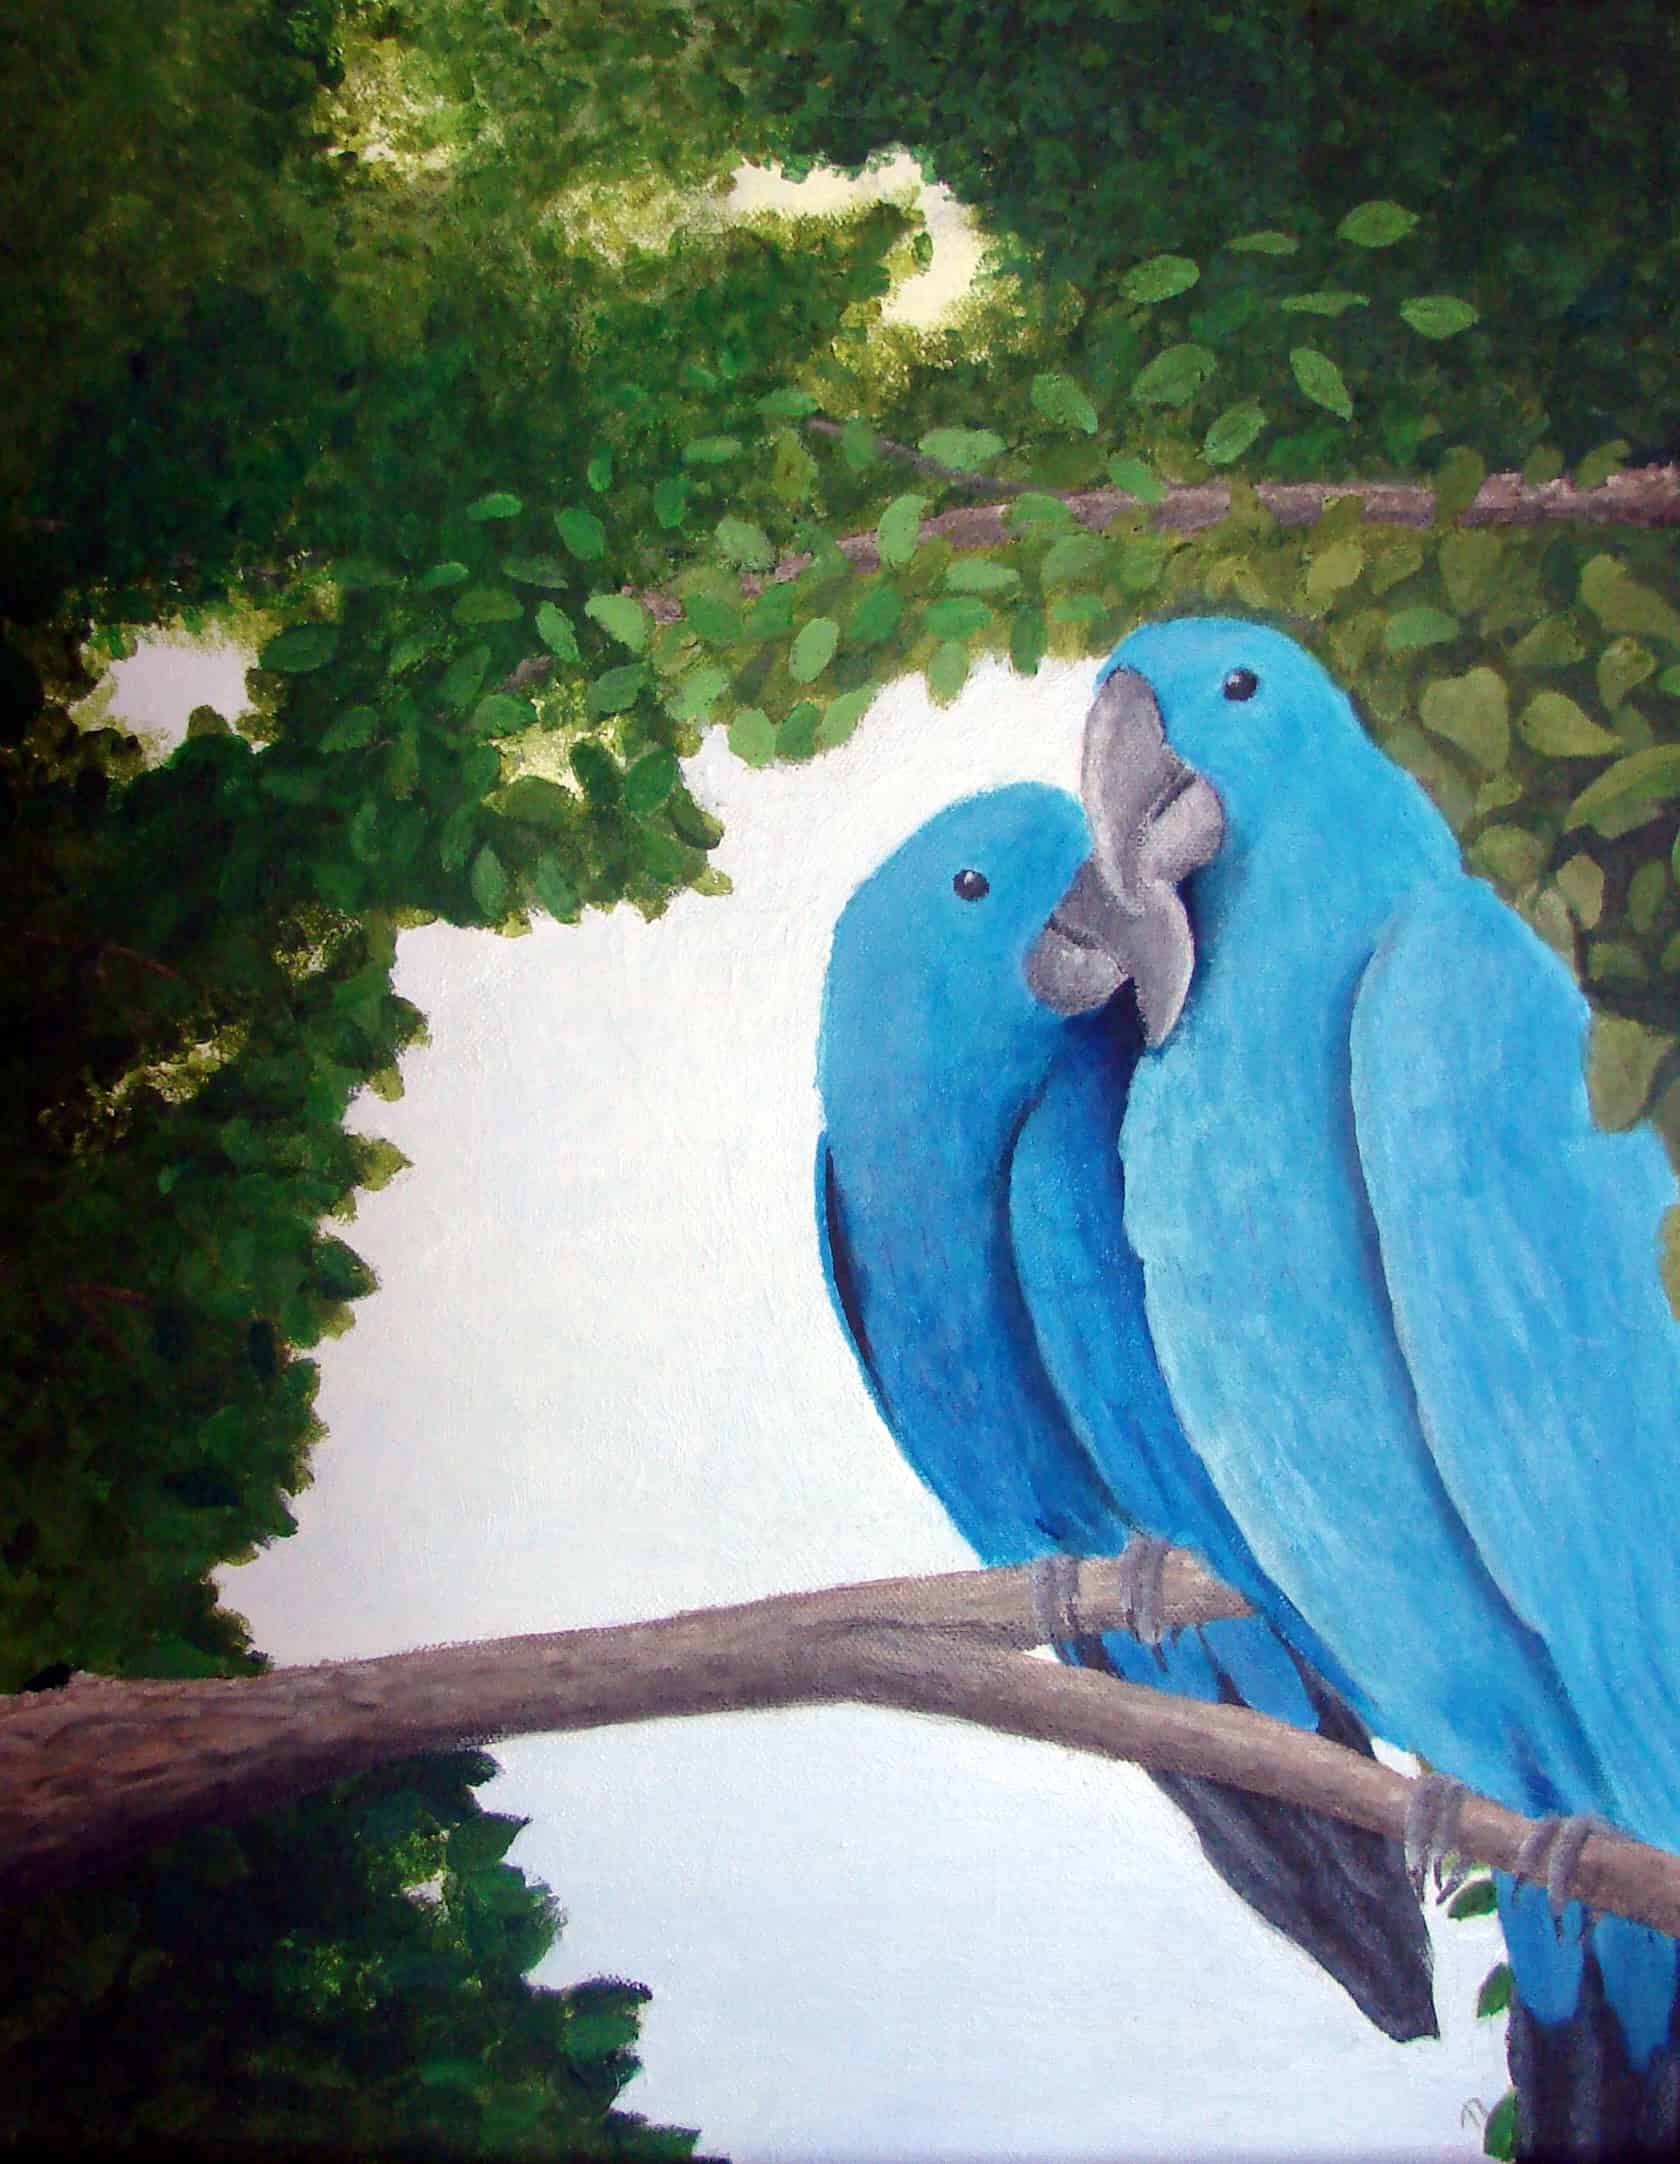 Macaws in Love - Commissioned Artwork